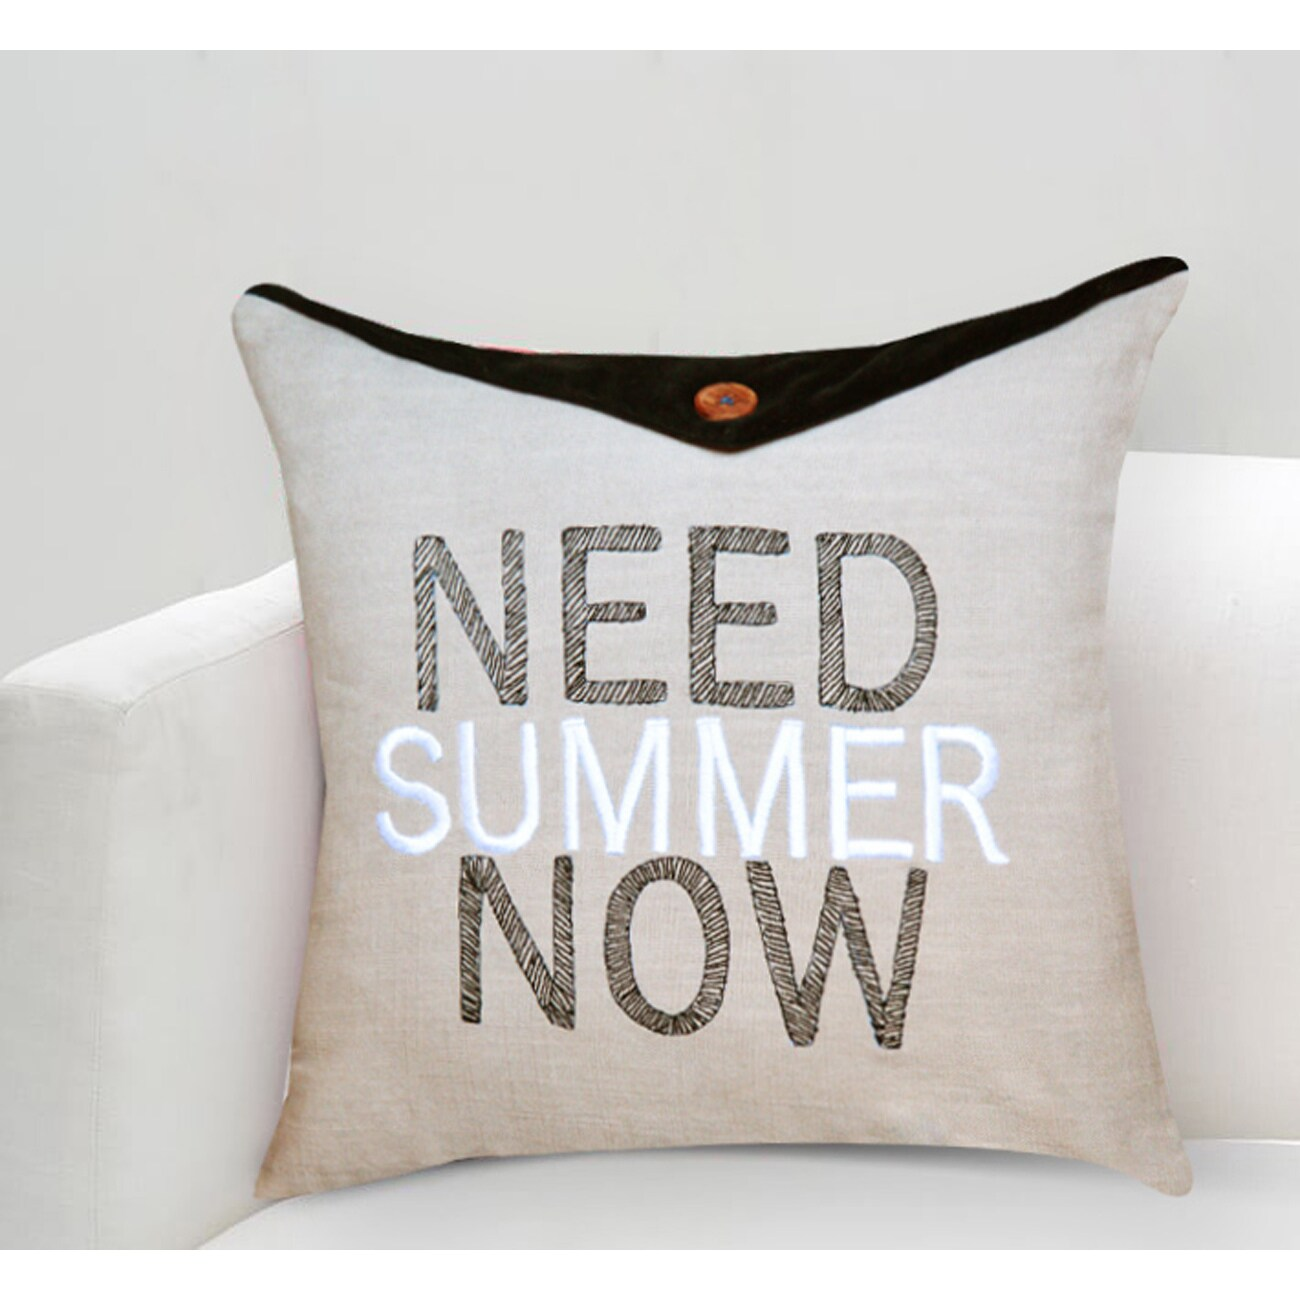 Need Summer Now Multicolored Cotton Throw Pillow (16 X 16)